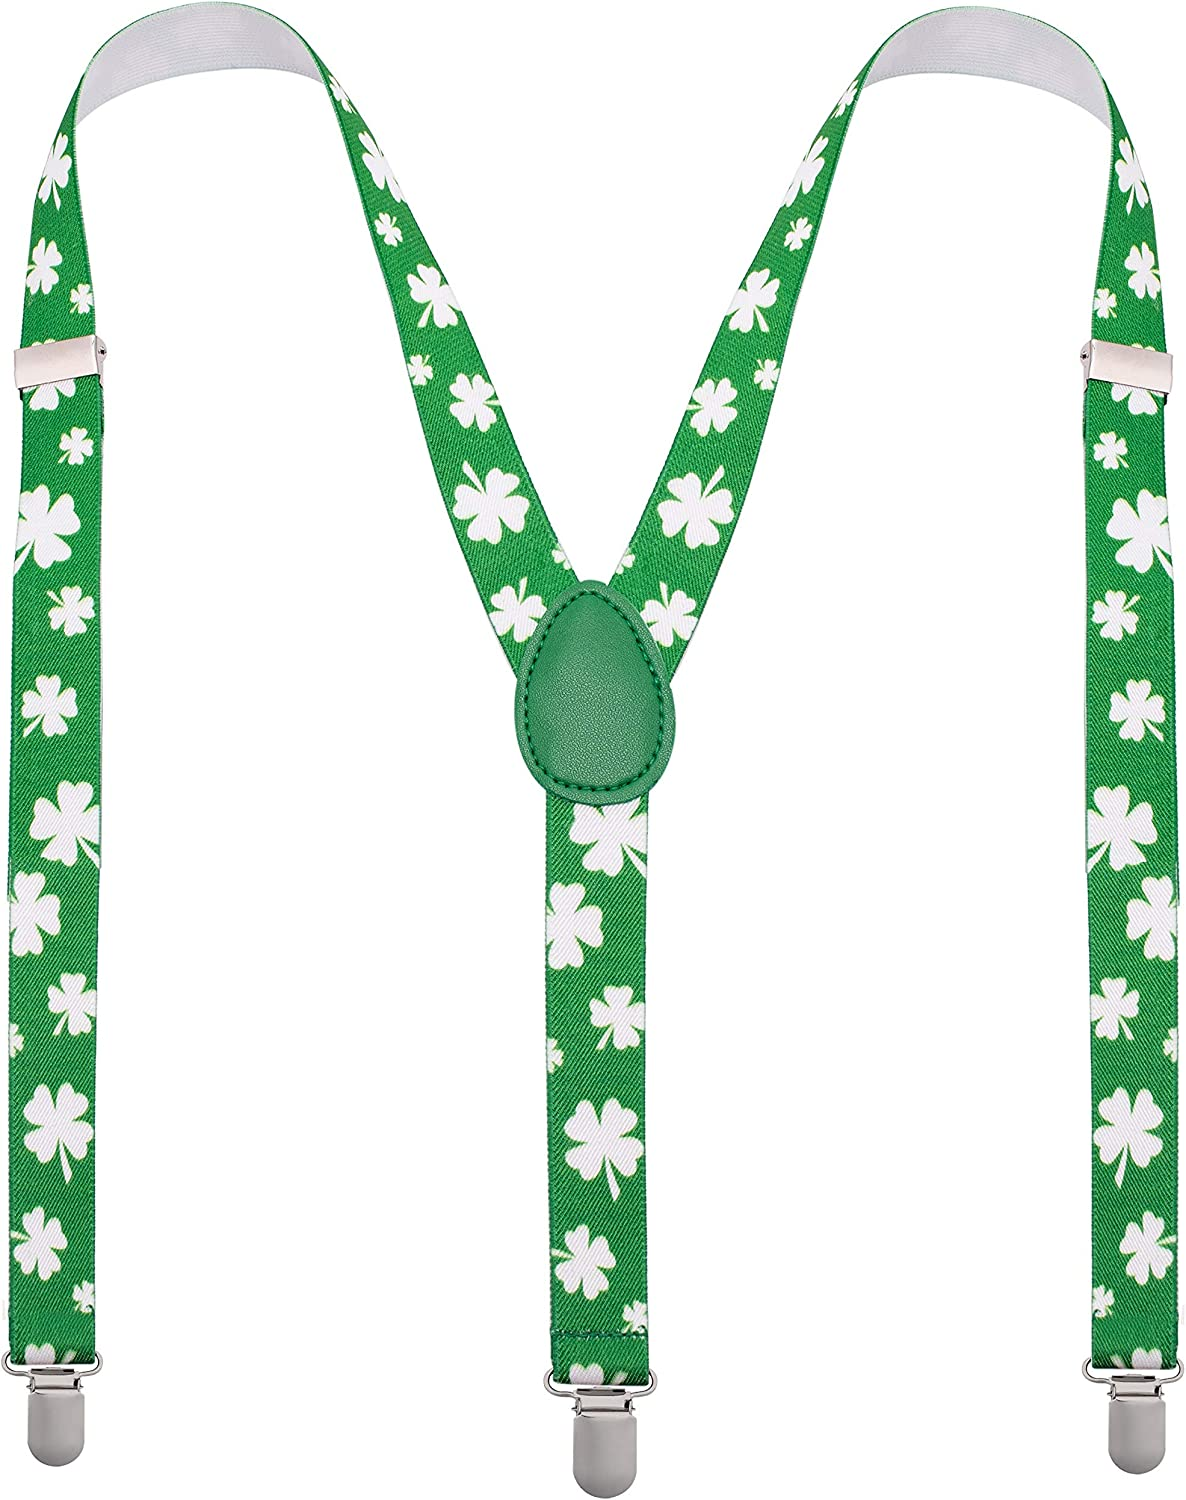 St Patricks Day Accessories Suspenders - Mens Suspenders with Clips - Many Colors to Choose From